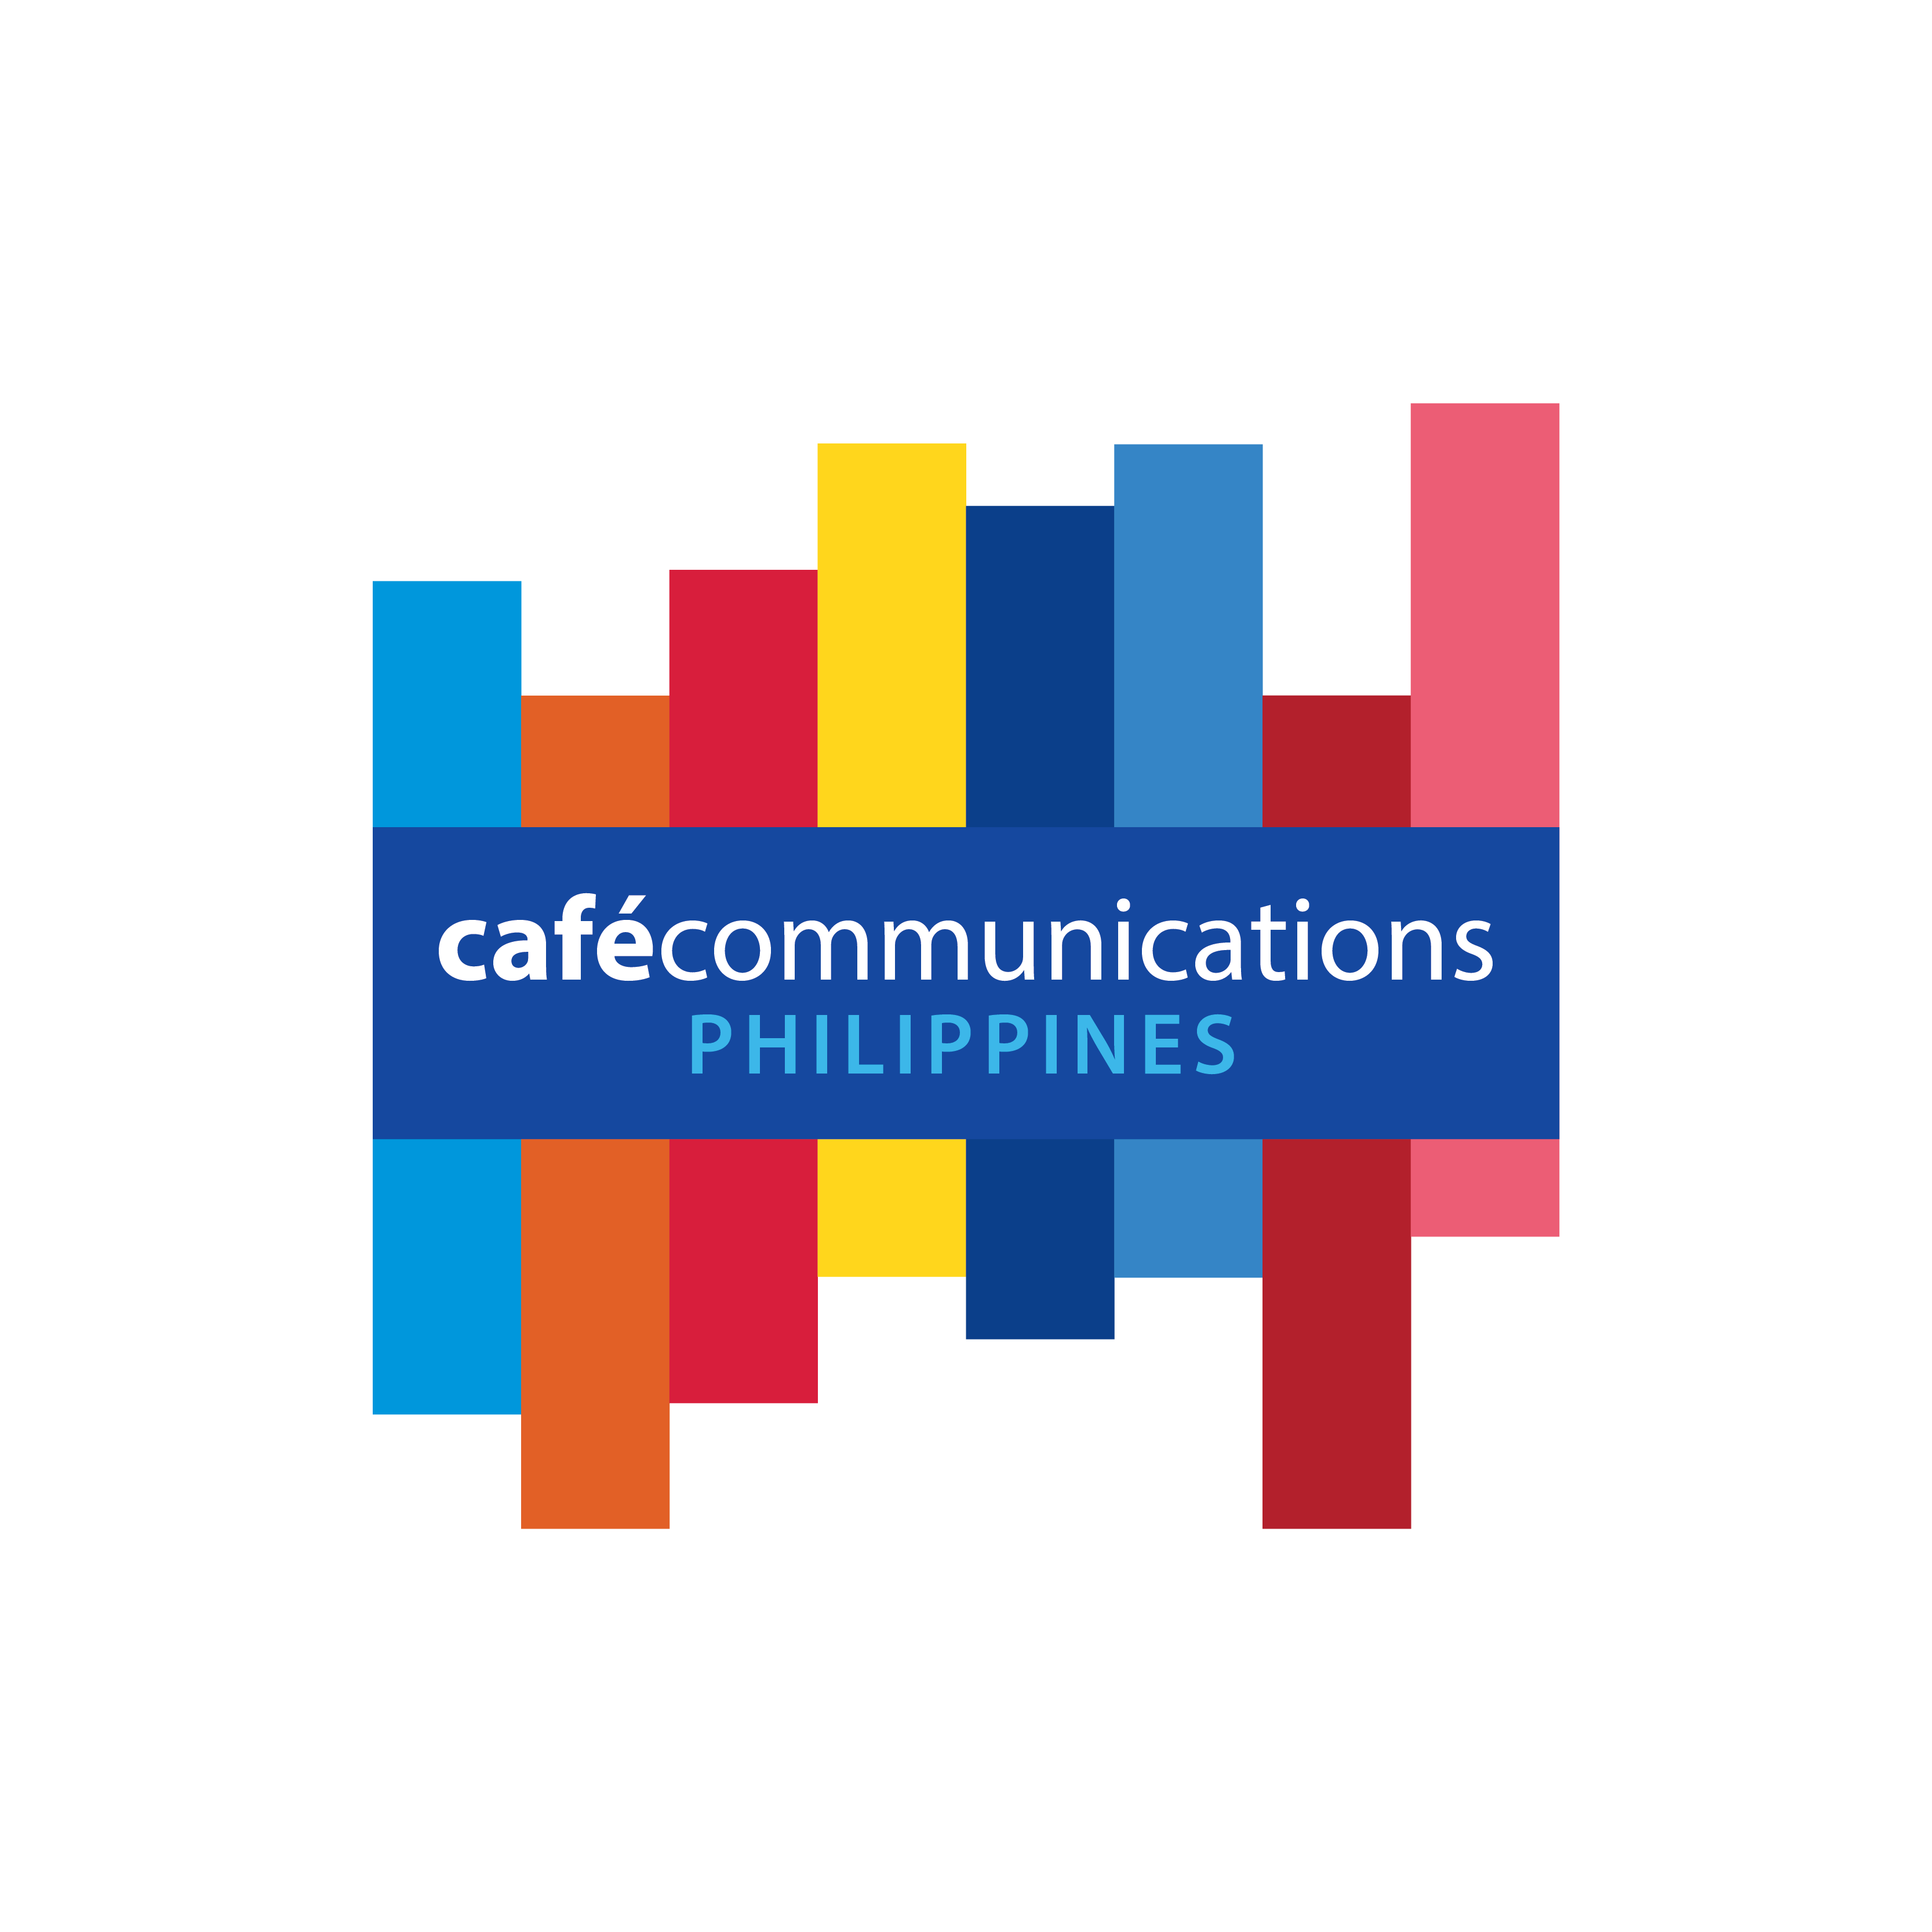 Cafe Communications Philippines